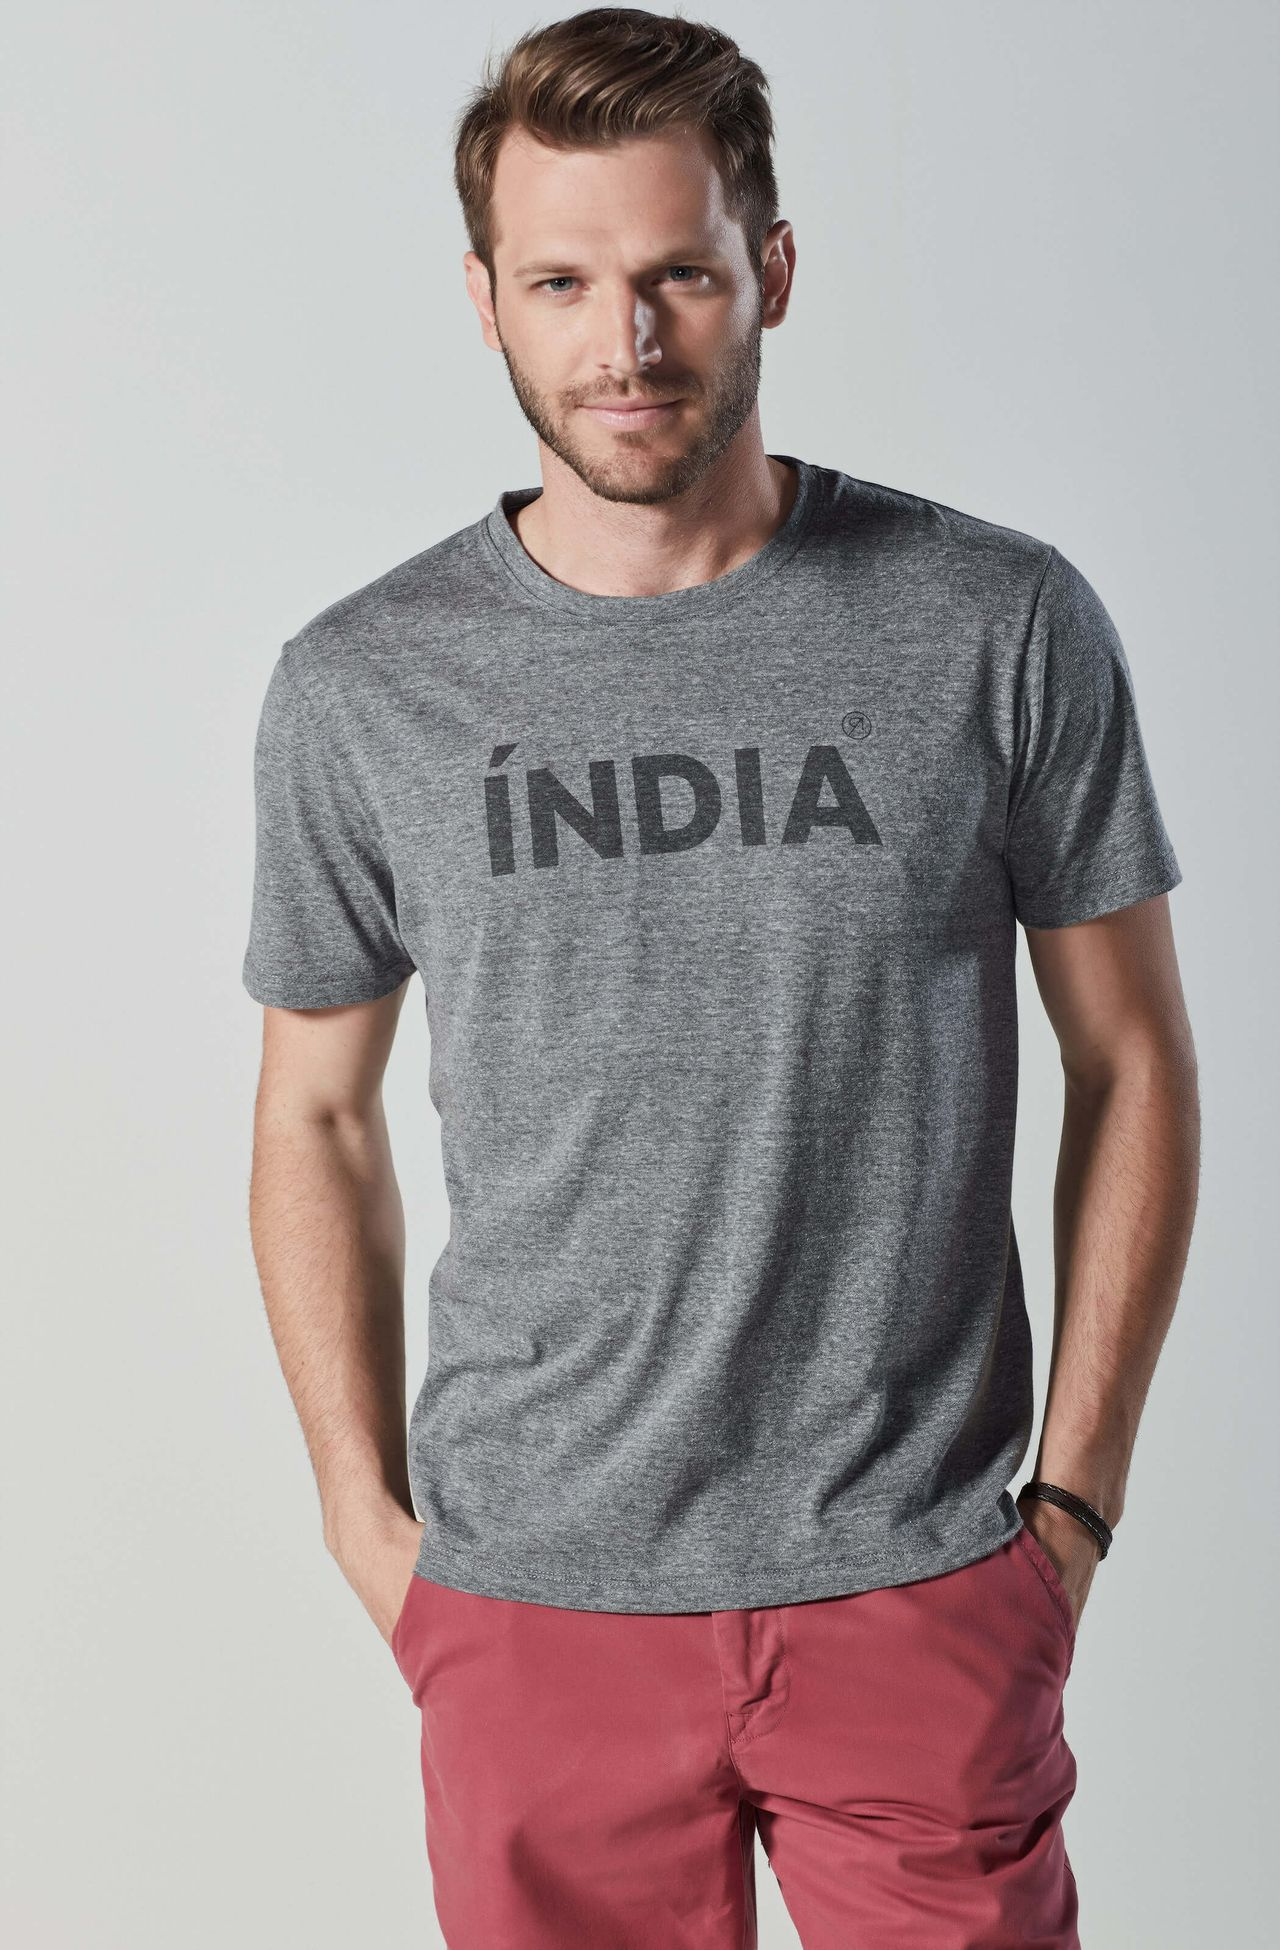 8353CCZ00050_945_1-TSHIRT-MC-INDIA